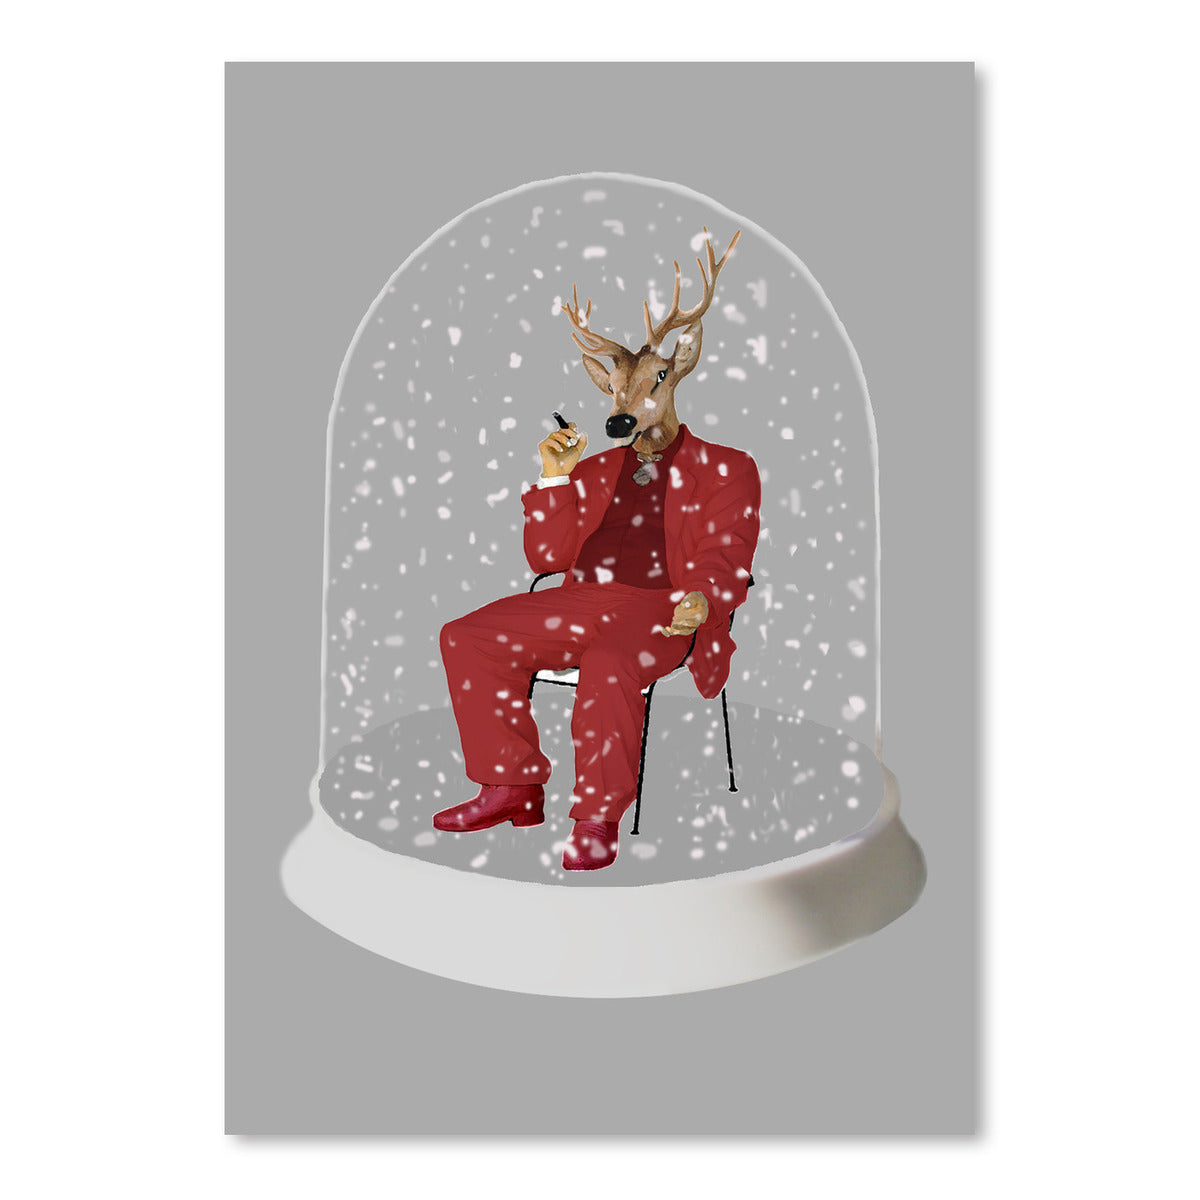 Snowball Deer by Coco de Paris - Art Print - Americanflat